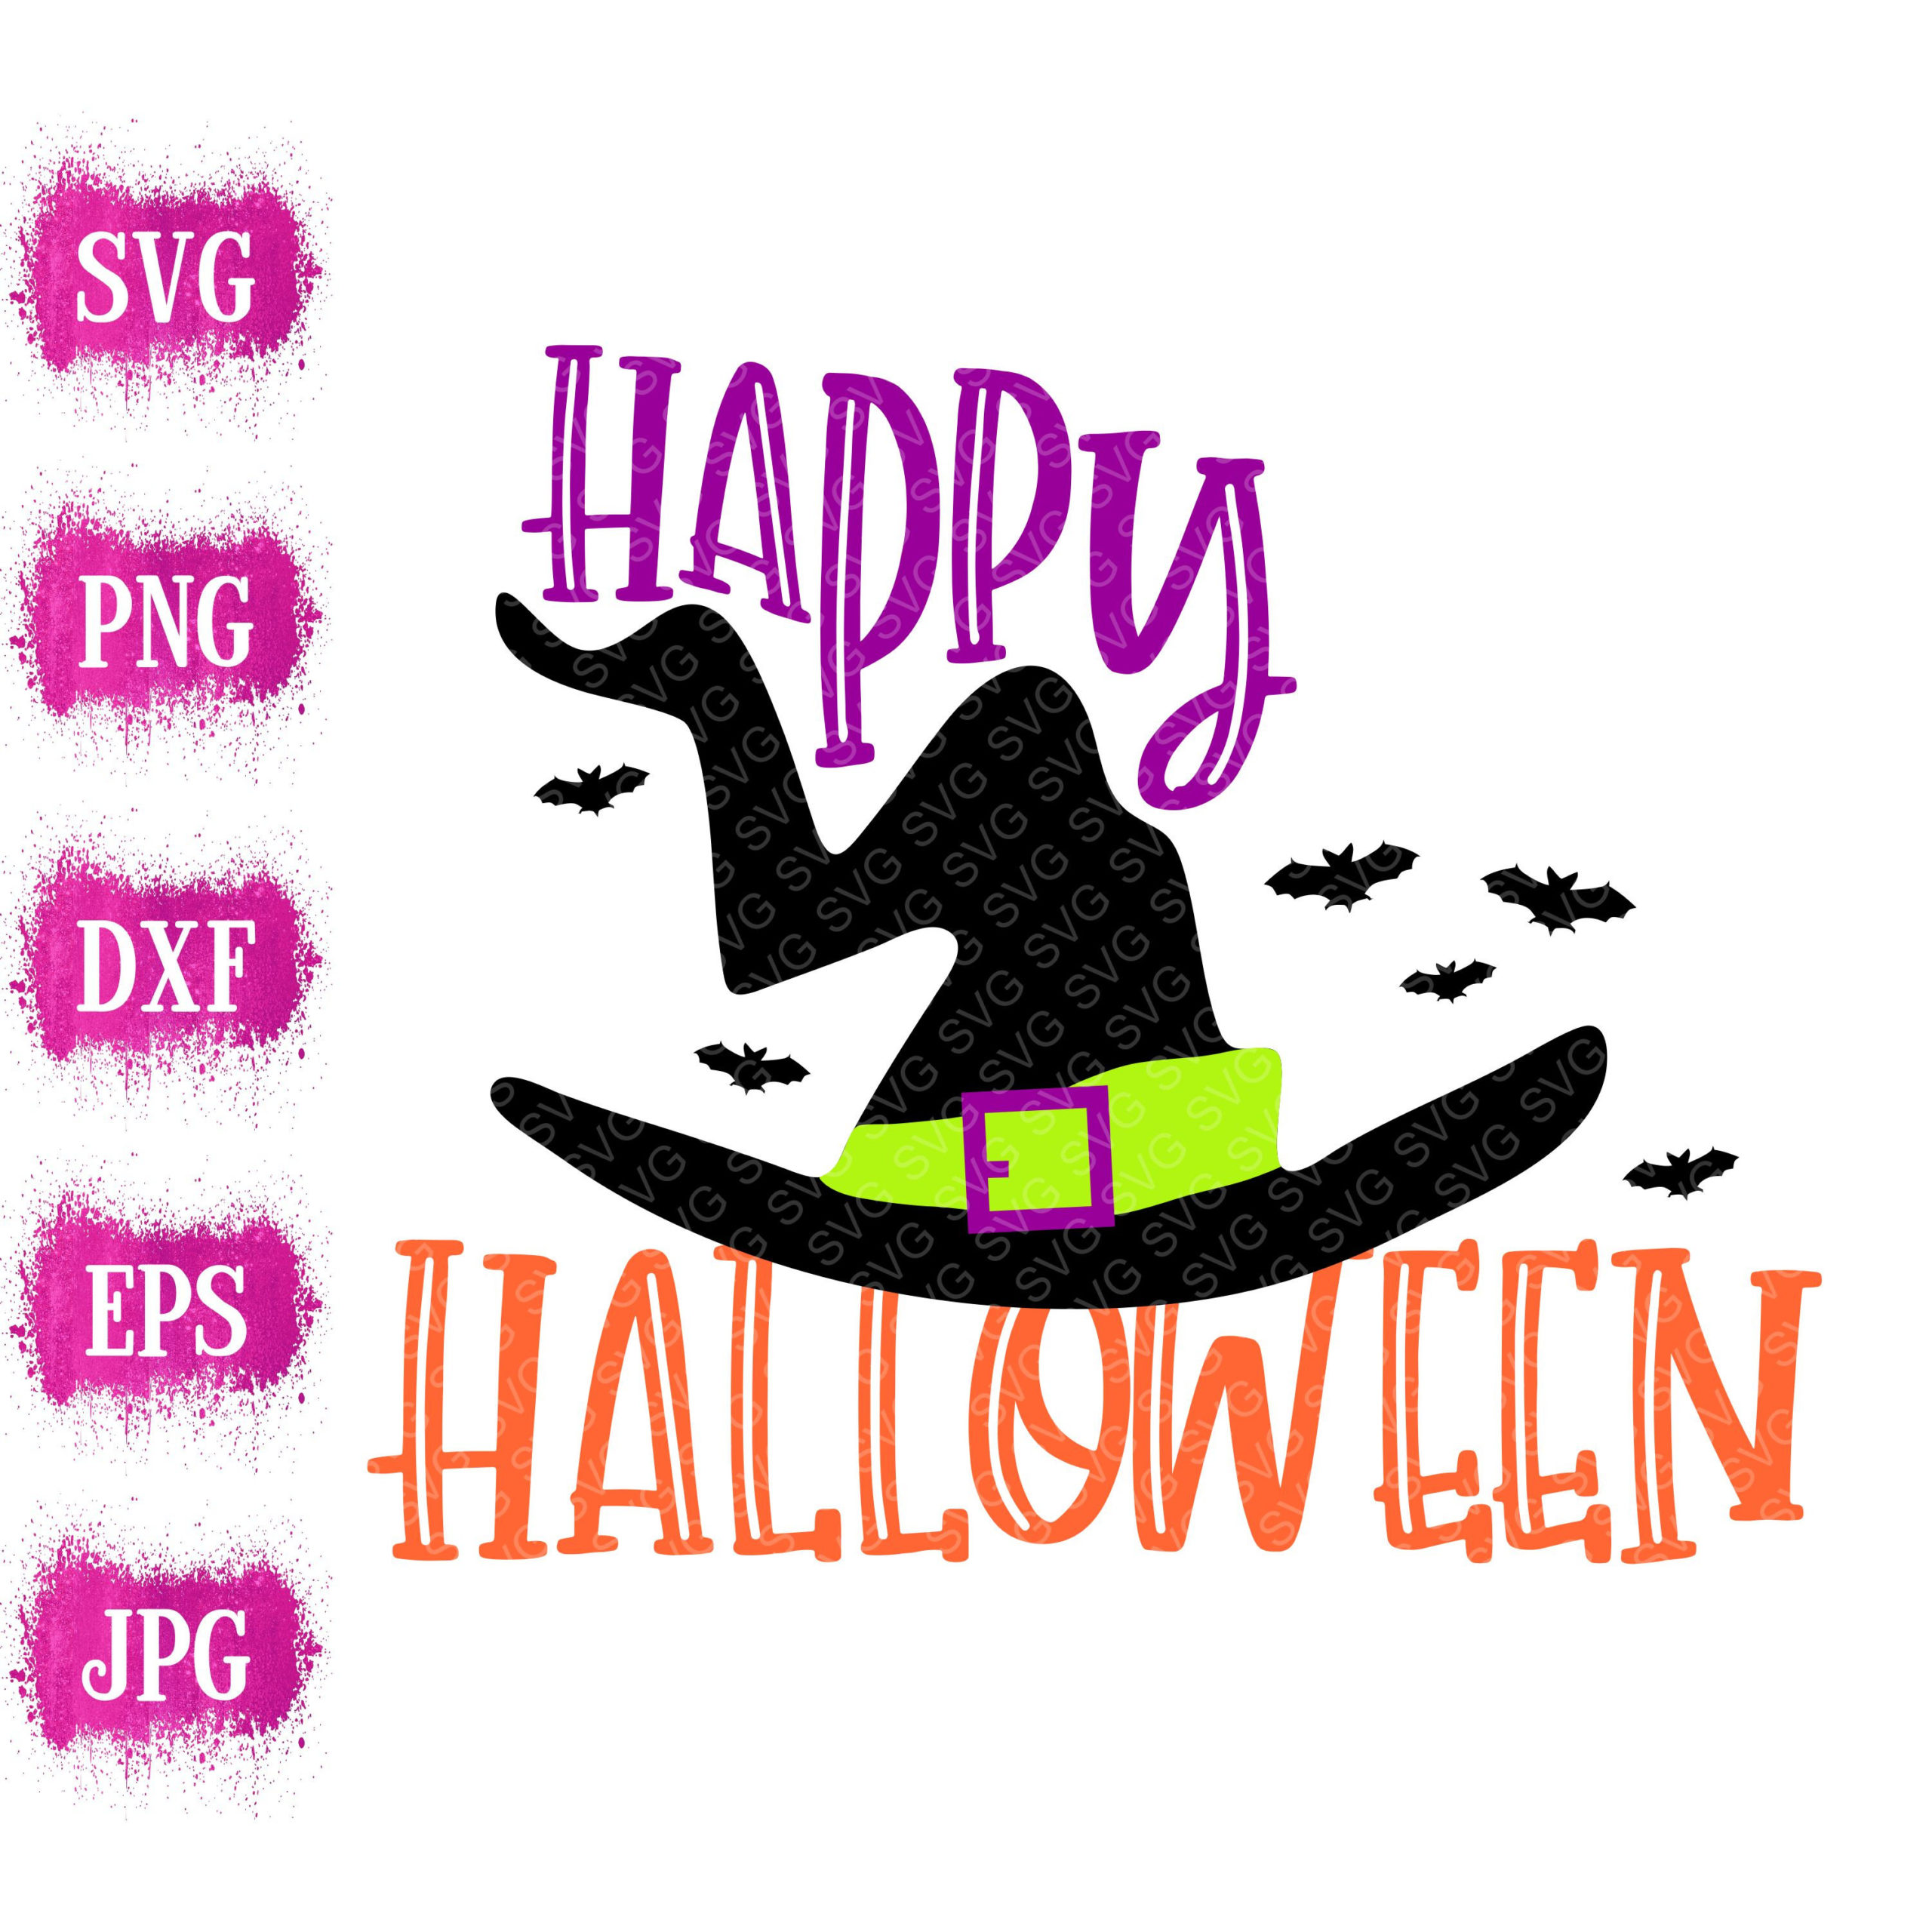 Witches-hat-svg-witches-svghalloween-svg-broom-svghalloween-svghalloweendigital-downloadcommercial-usesvg-for-cricutadore-svg-5f6f8b70